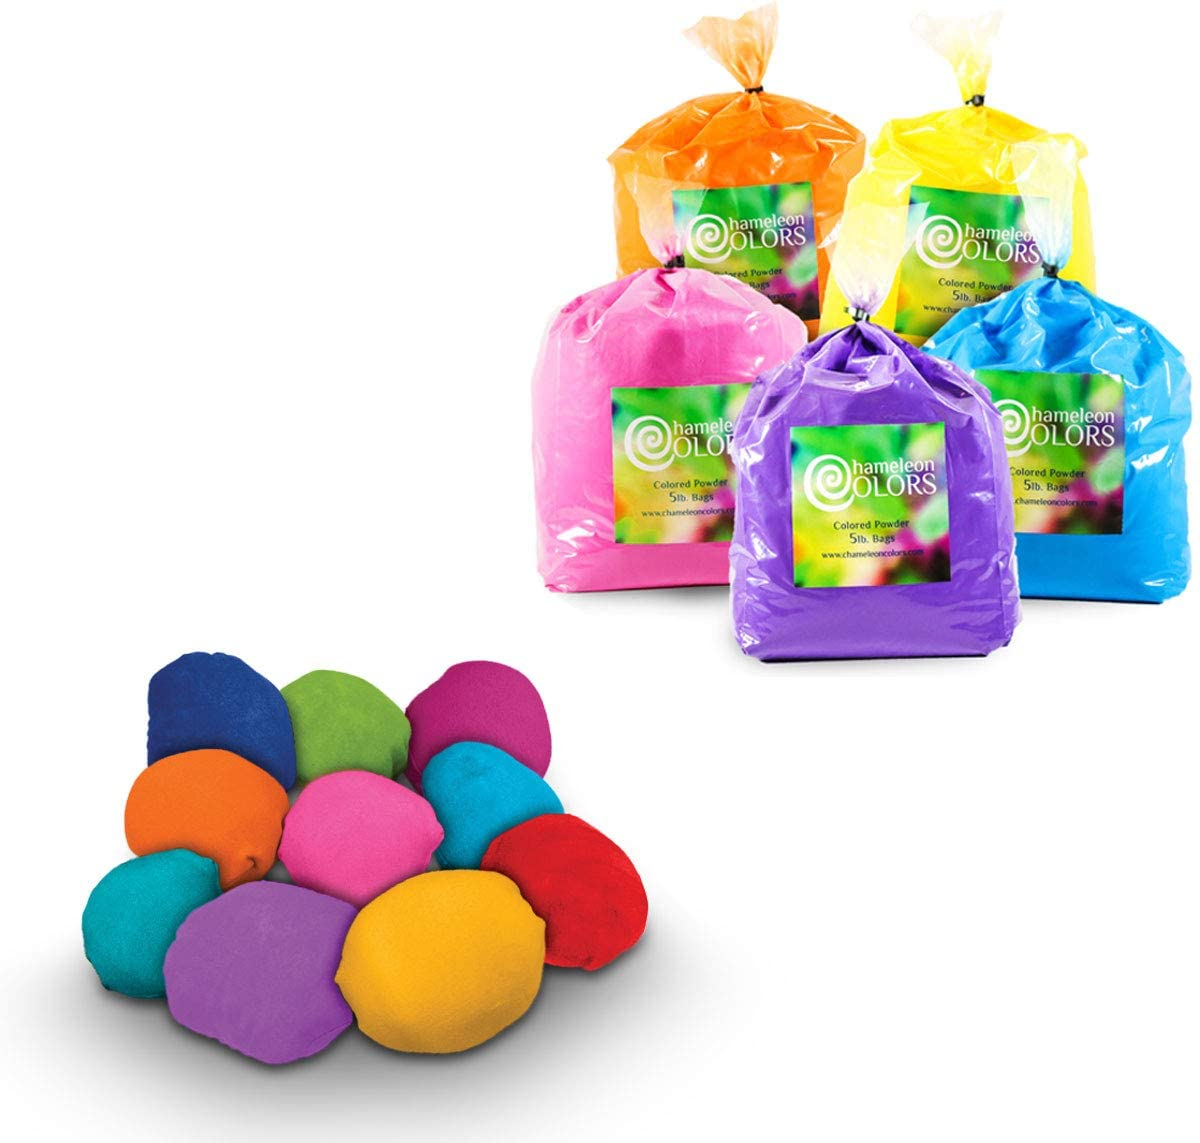 Color Powder 5 Pound 5 Pack with 10 Refillable Color Balls by Chameleon Colors, Holi Color Powder for Parties, Color War Powder with 5 Vibrant Colors